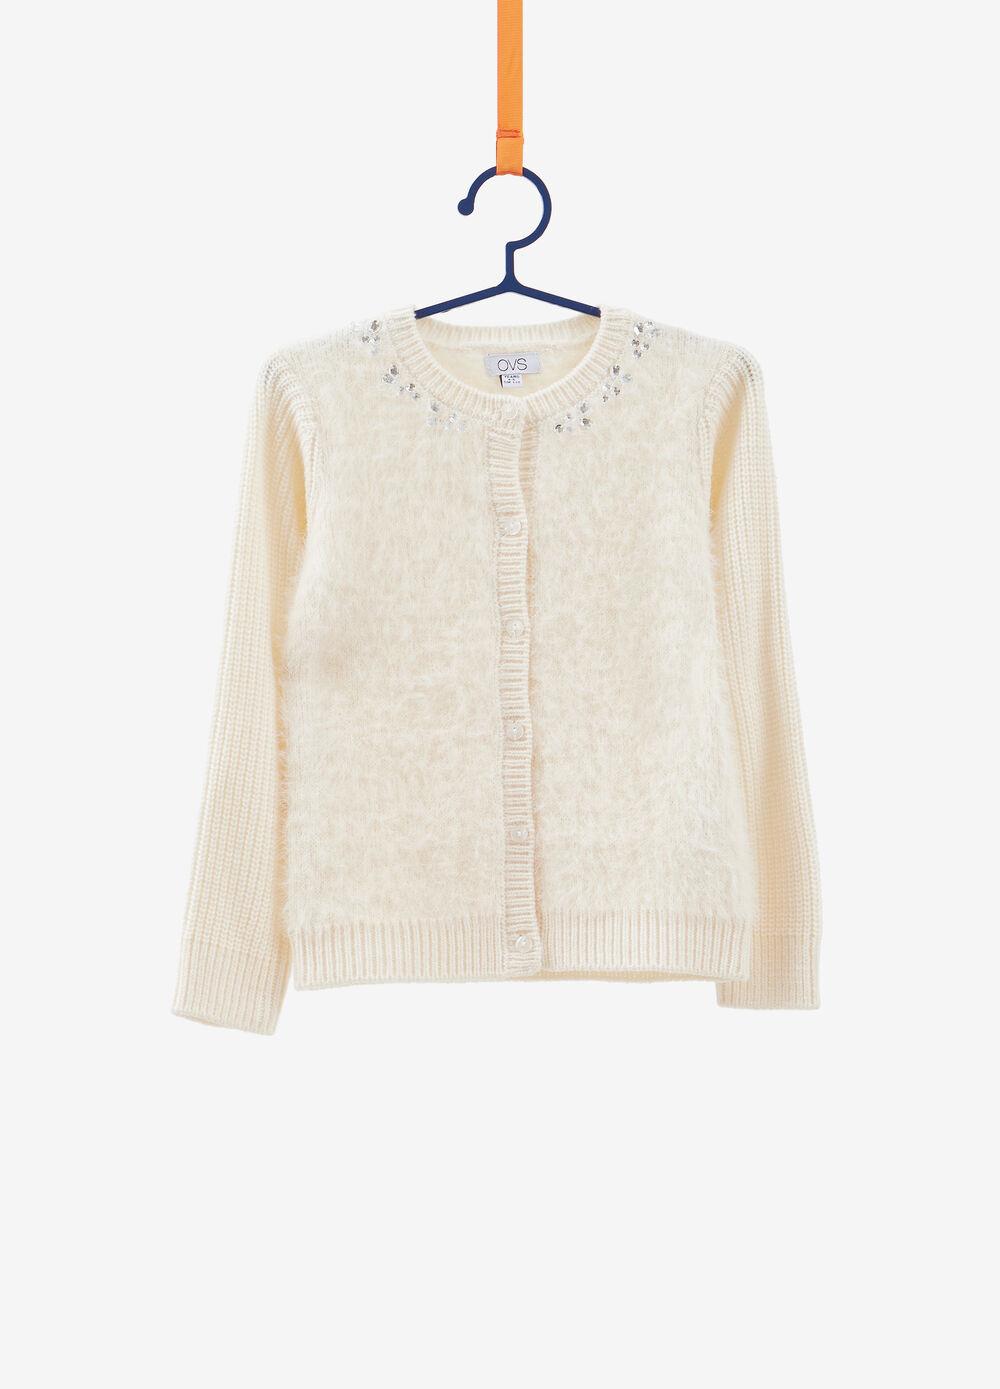 Solid colour knit cardigan with diamantés